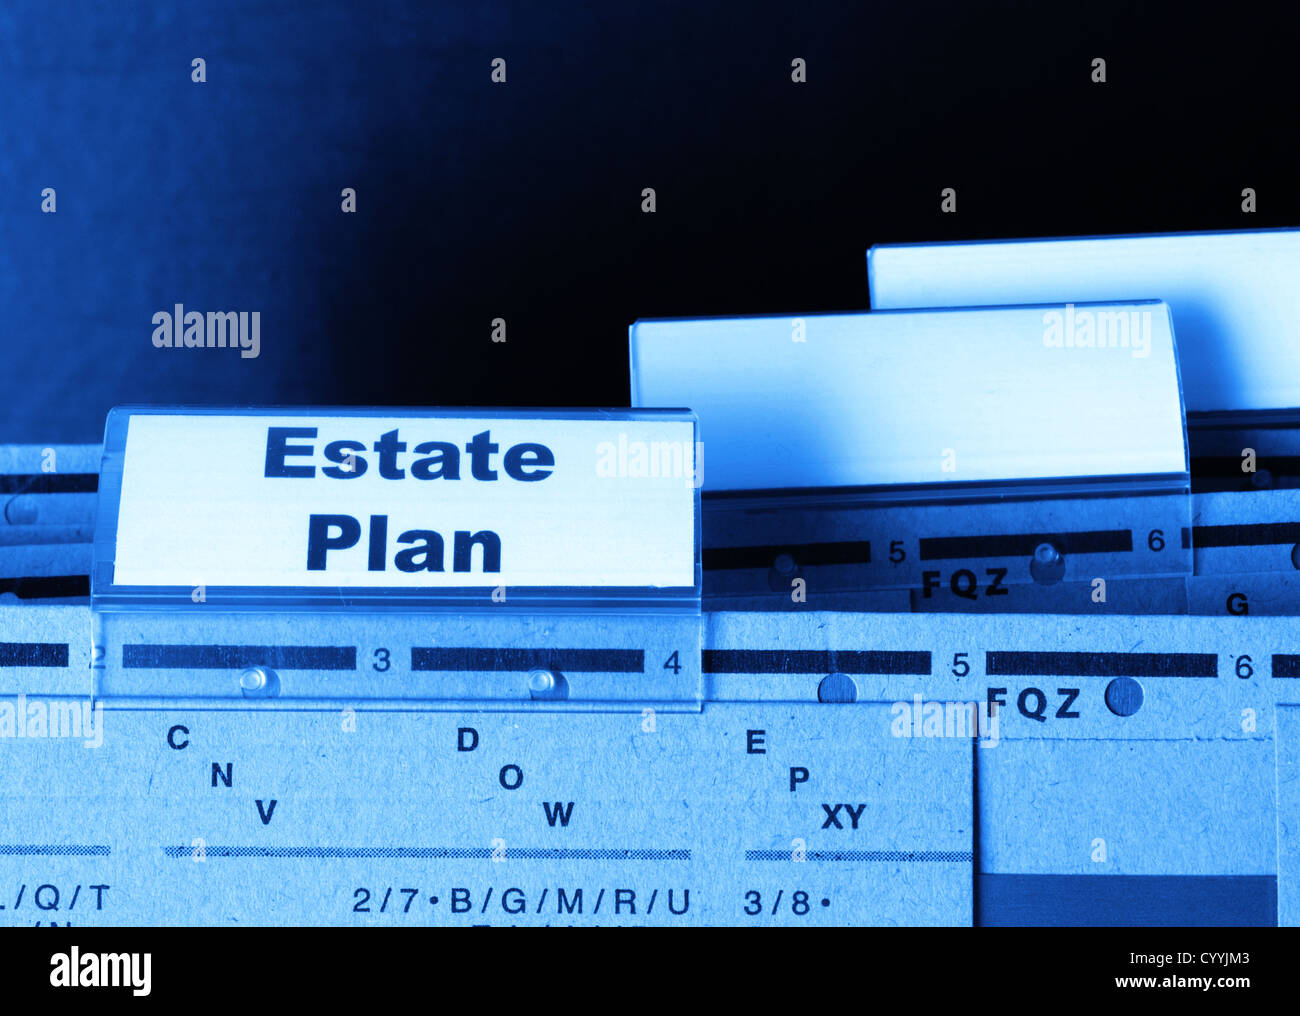 real estate plan on business folder showing buy a house concept - Stock Image